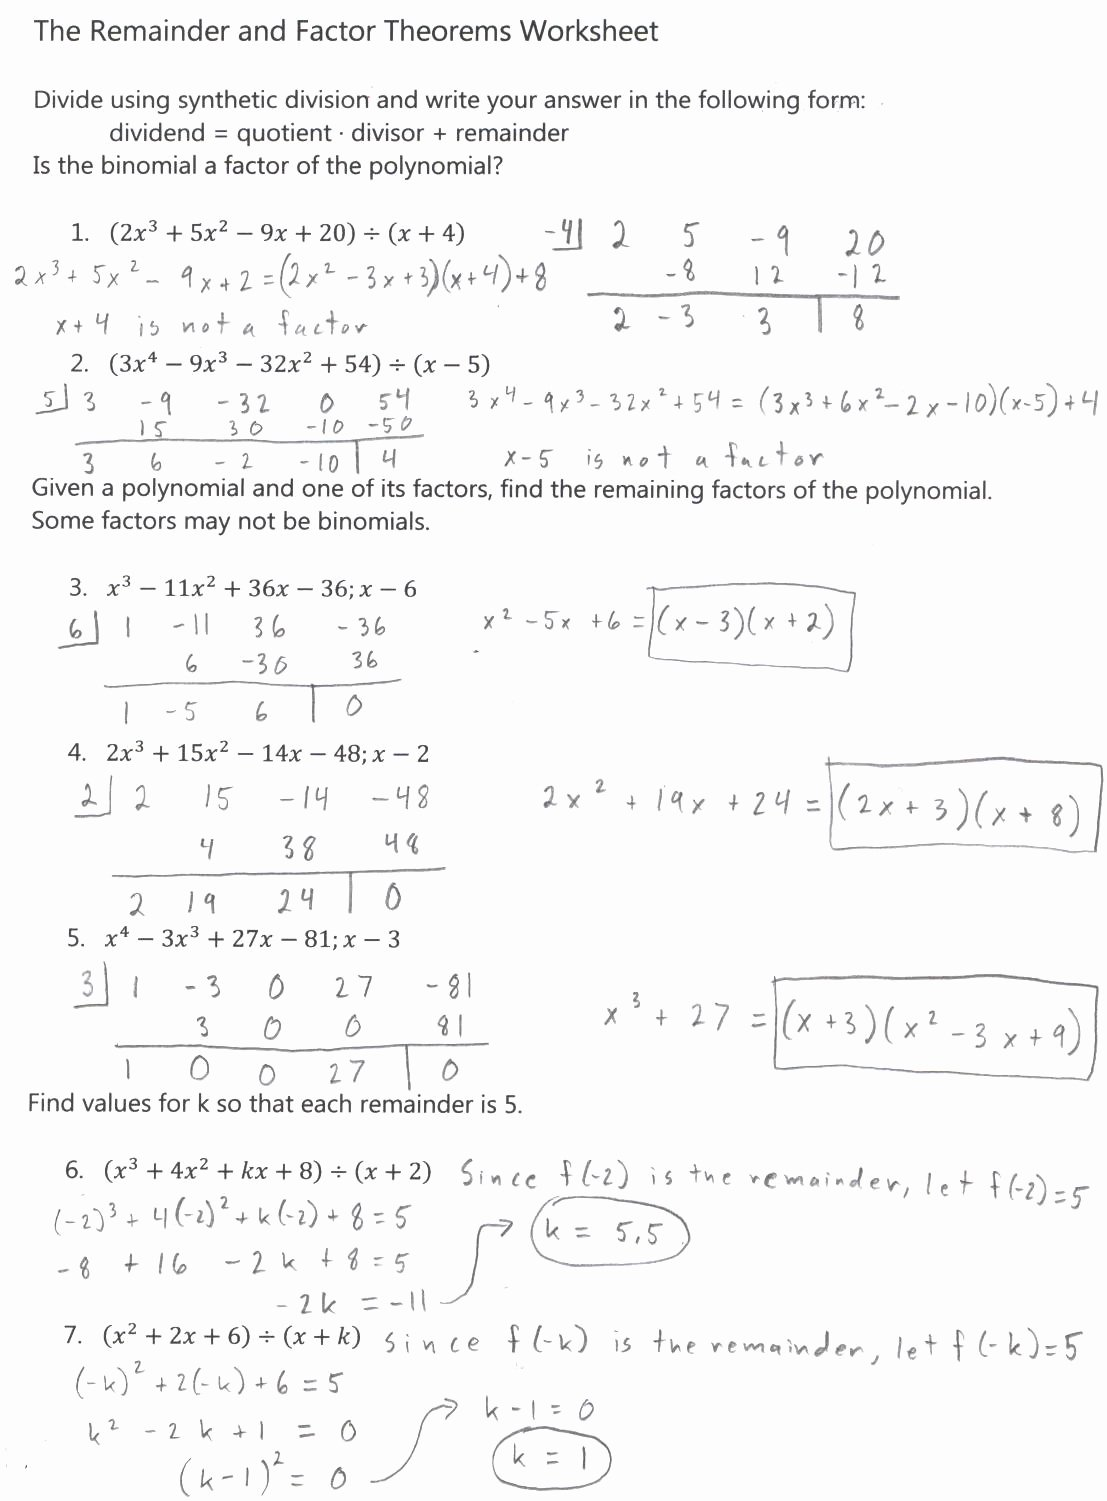 Graphing Polynomial Functions Worksheet Answers New Algebra 2